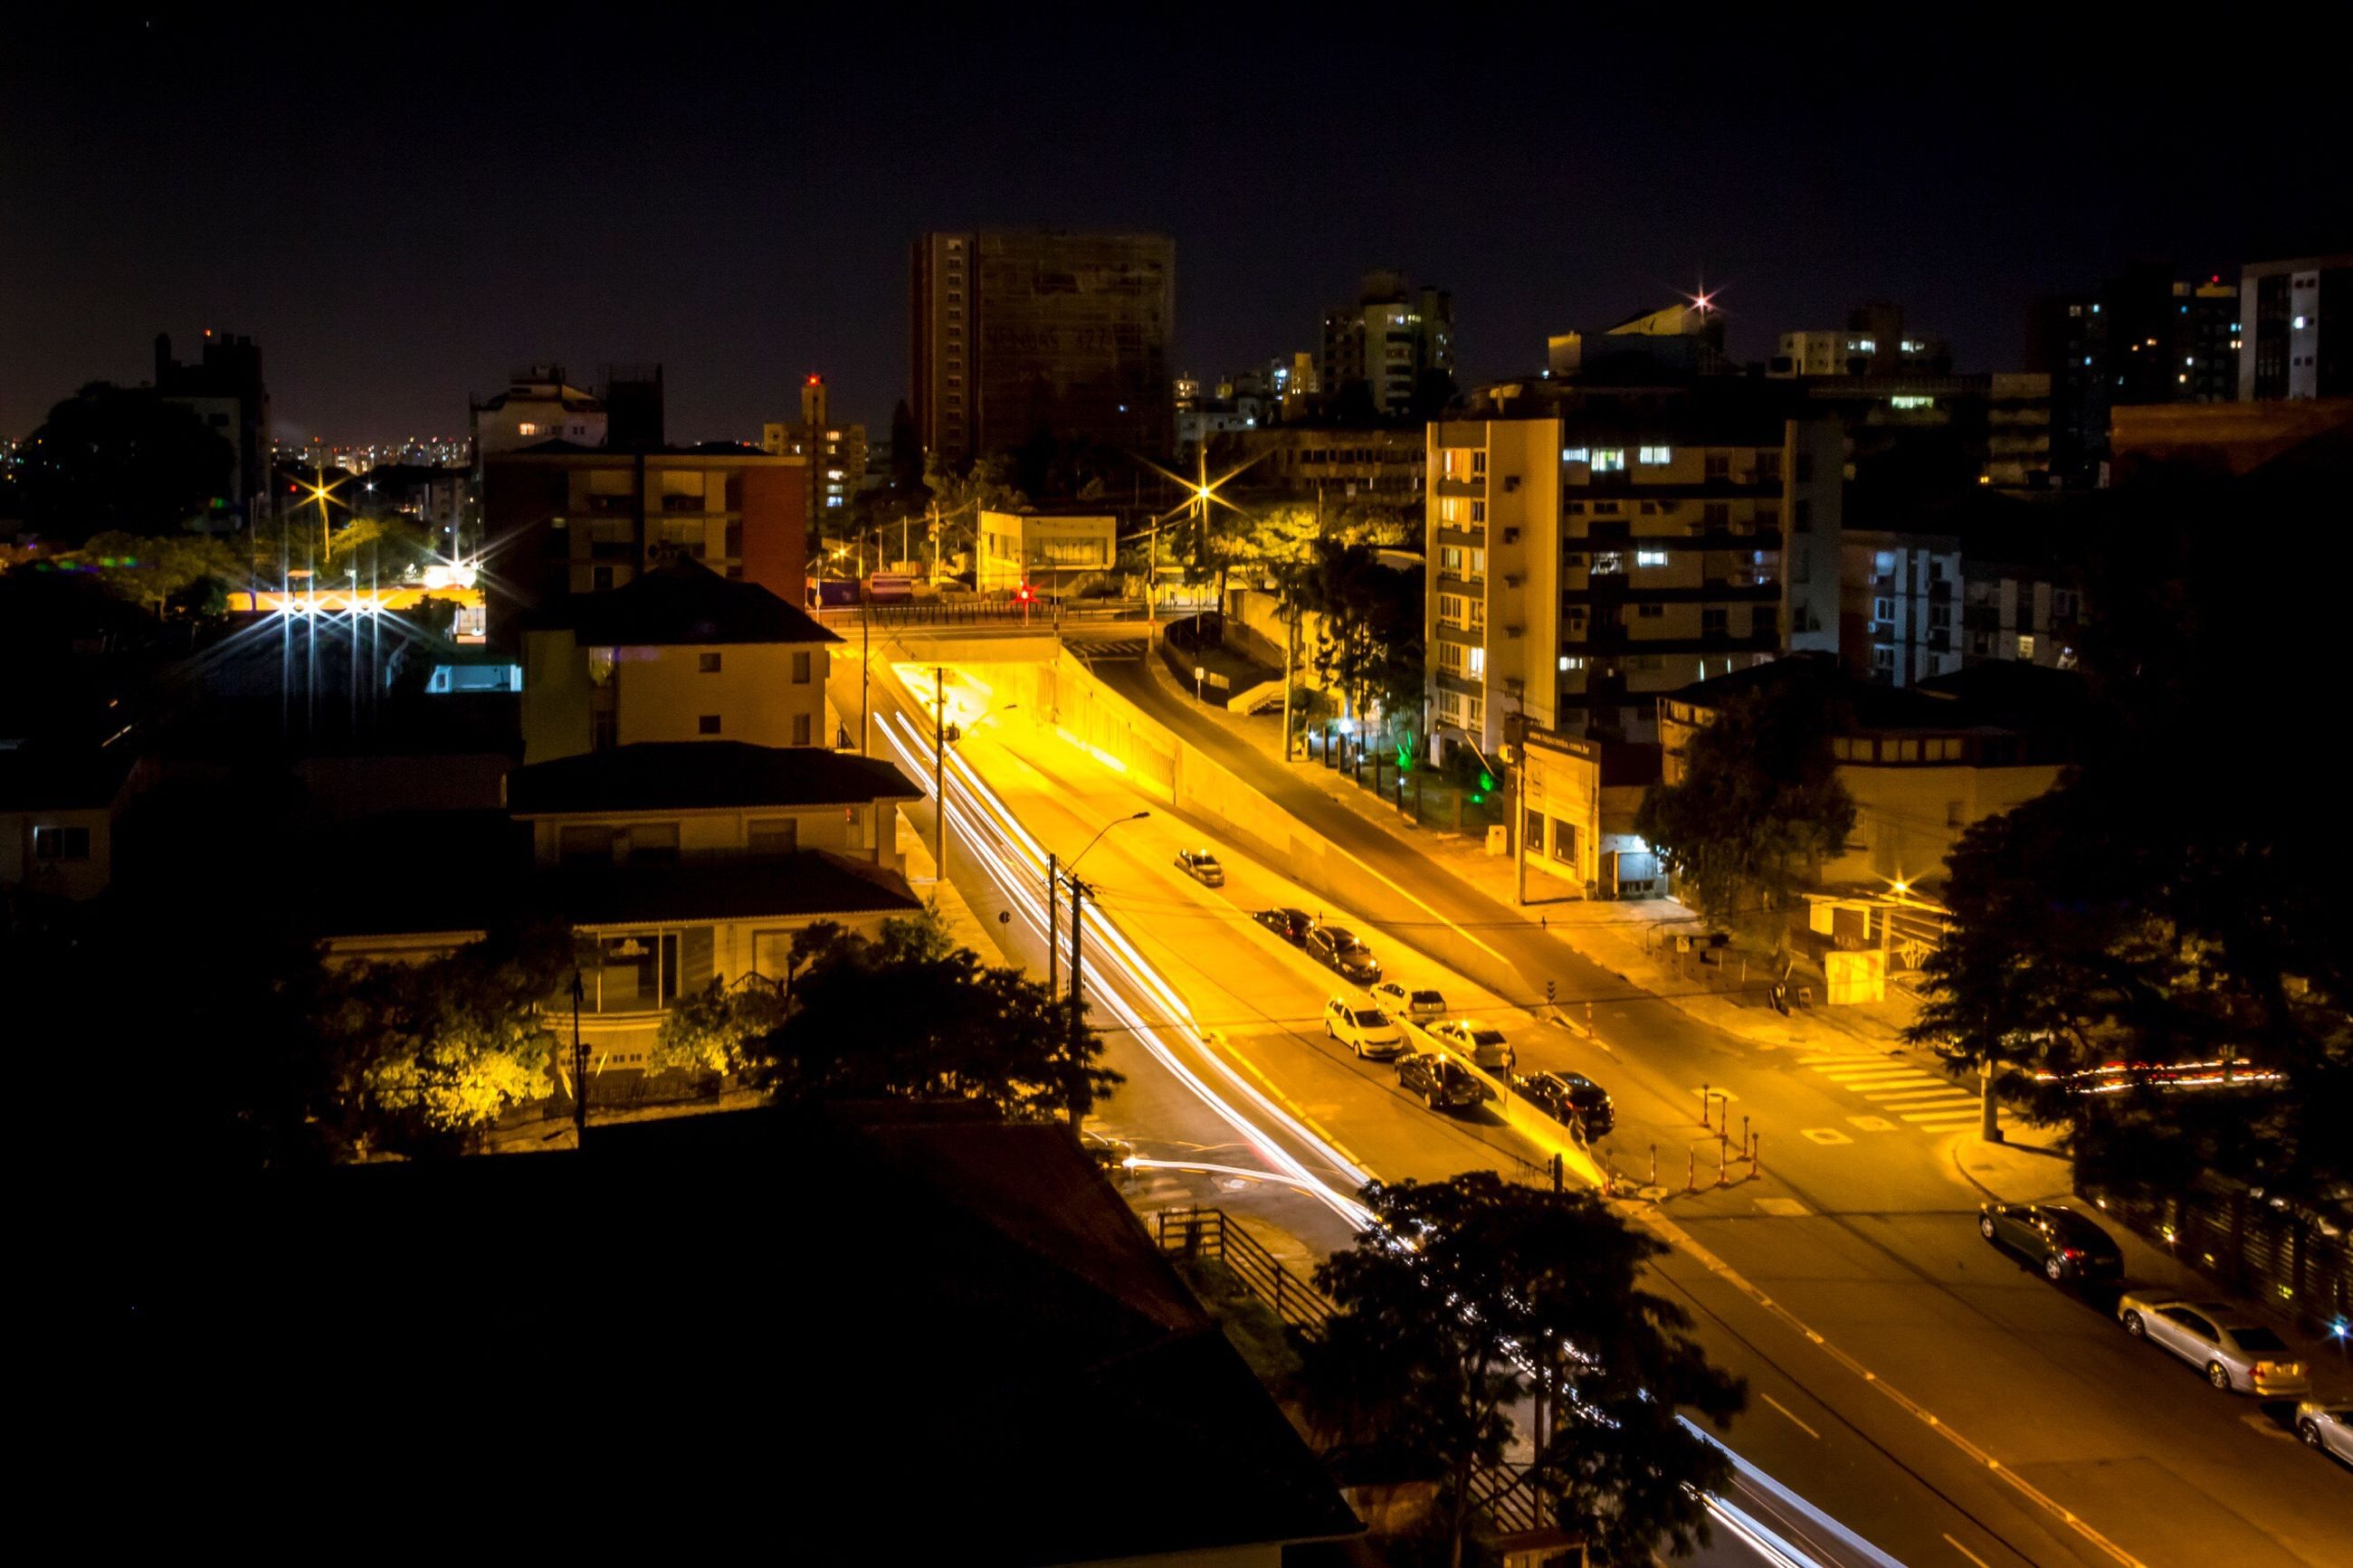 night, city, illuminated, high angle view, transportation, building exterior, street light, cityscape, city street, city life, architecture, traffic, outdoors, built structure, road, no people, urban road, sky, nightlife, skyscraper